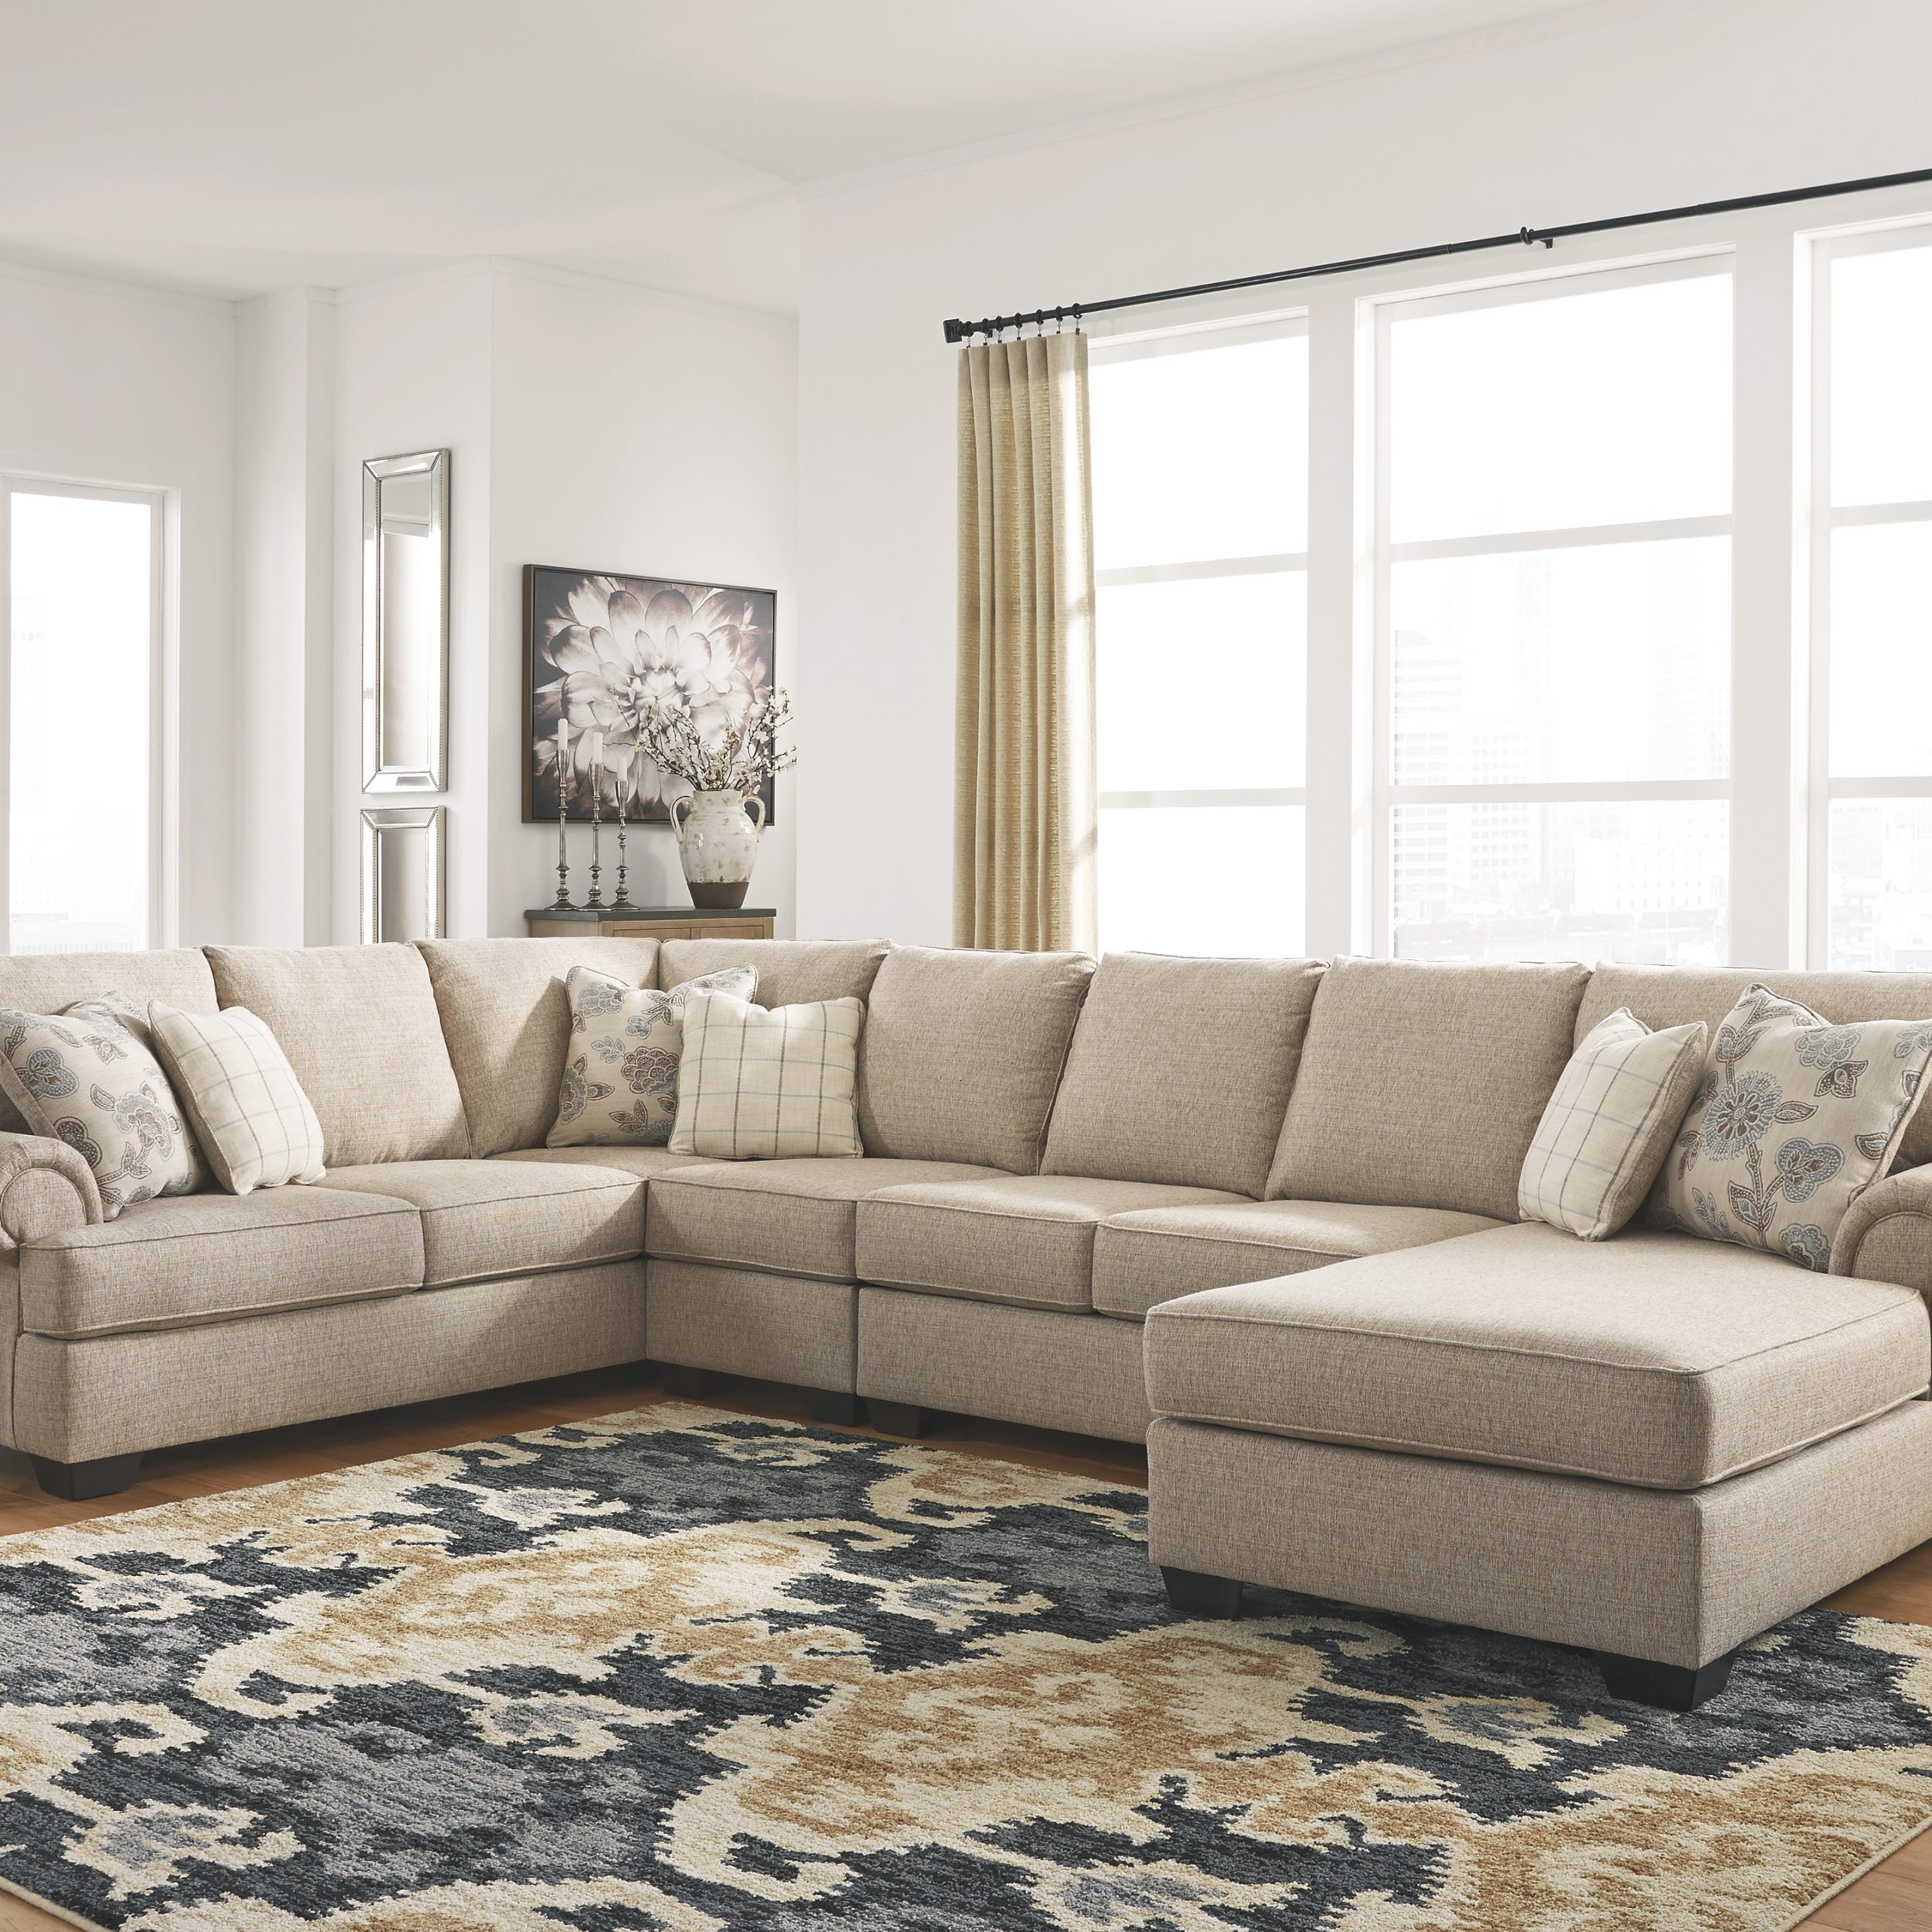 Baceno 4 Piece Sectional With Chaiseashley Furniture For Benton 4 Piece Sectionals (View 3 of 15)